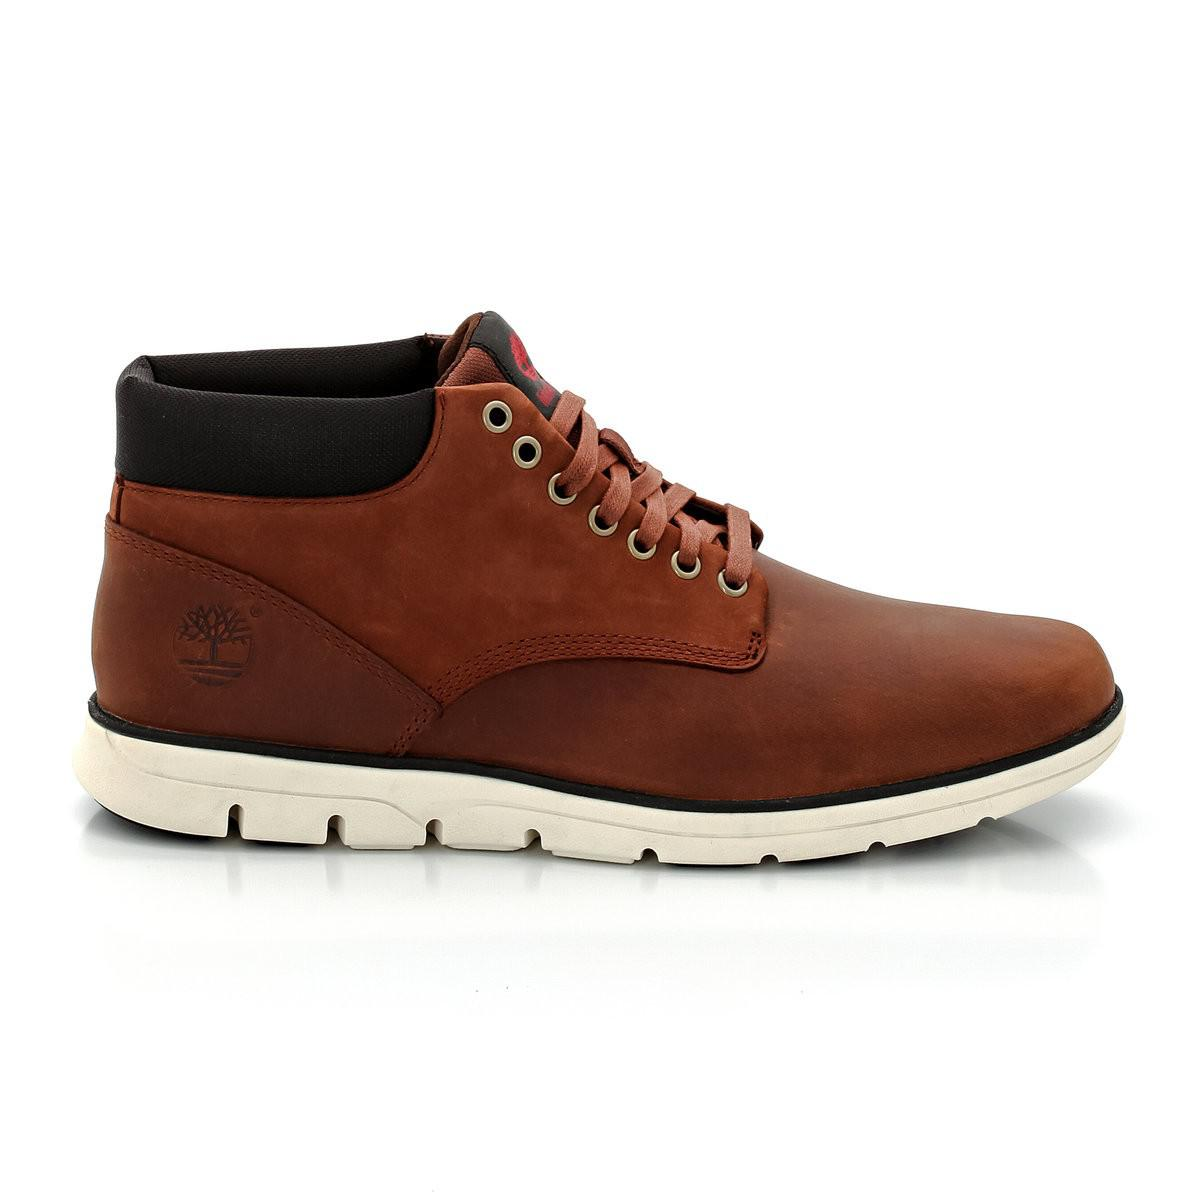 TIMBERLAND Bradstreet CA13EE Nubuck Boots clearance wiki official cheap online buy cheap great deals 2015 online free shipping browse VBZFy